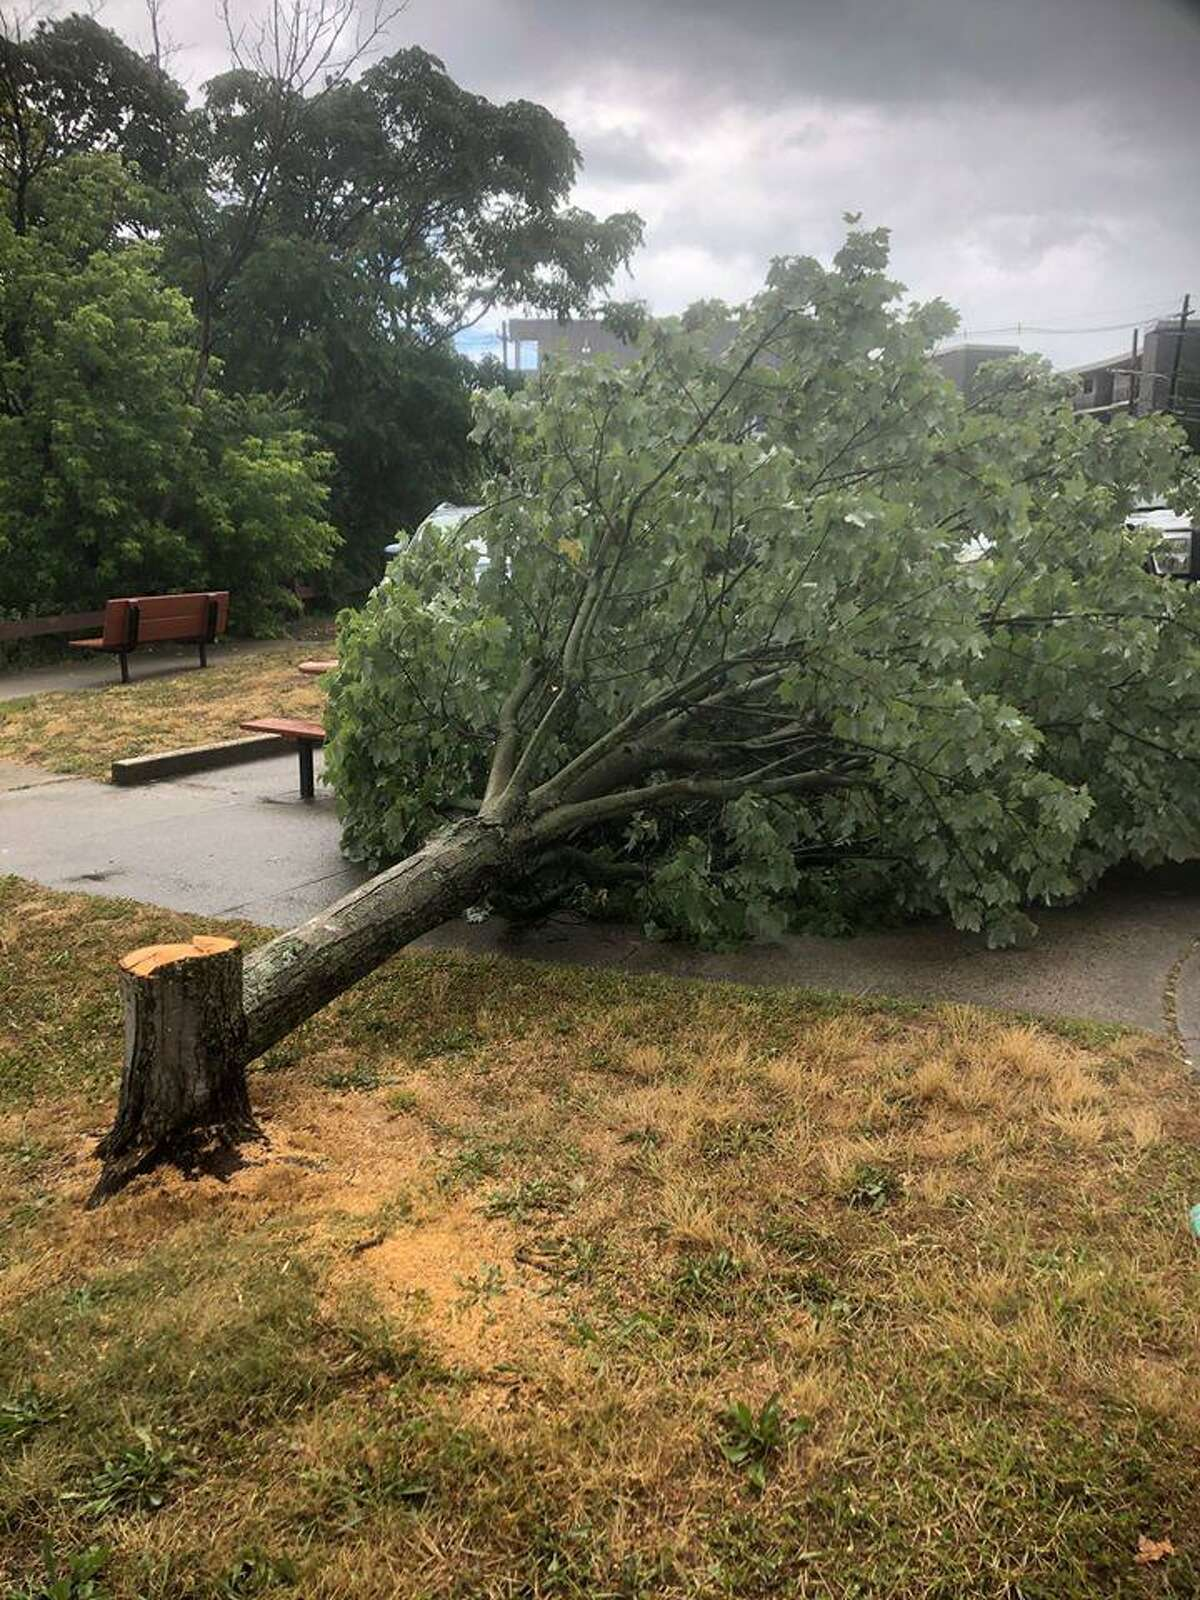 """City officials said a """"perfectly healthy"""" maple tree was found Tuesday, June 30, 2020, in Mill Pond Park in Norwalk, Conn., after it had been cut down, unauthorized."""